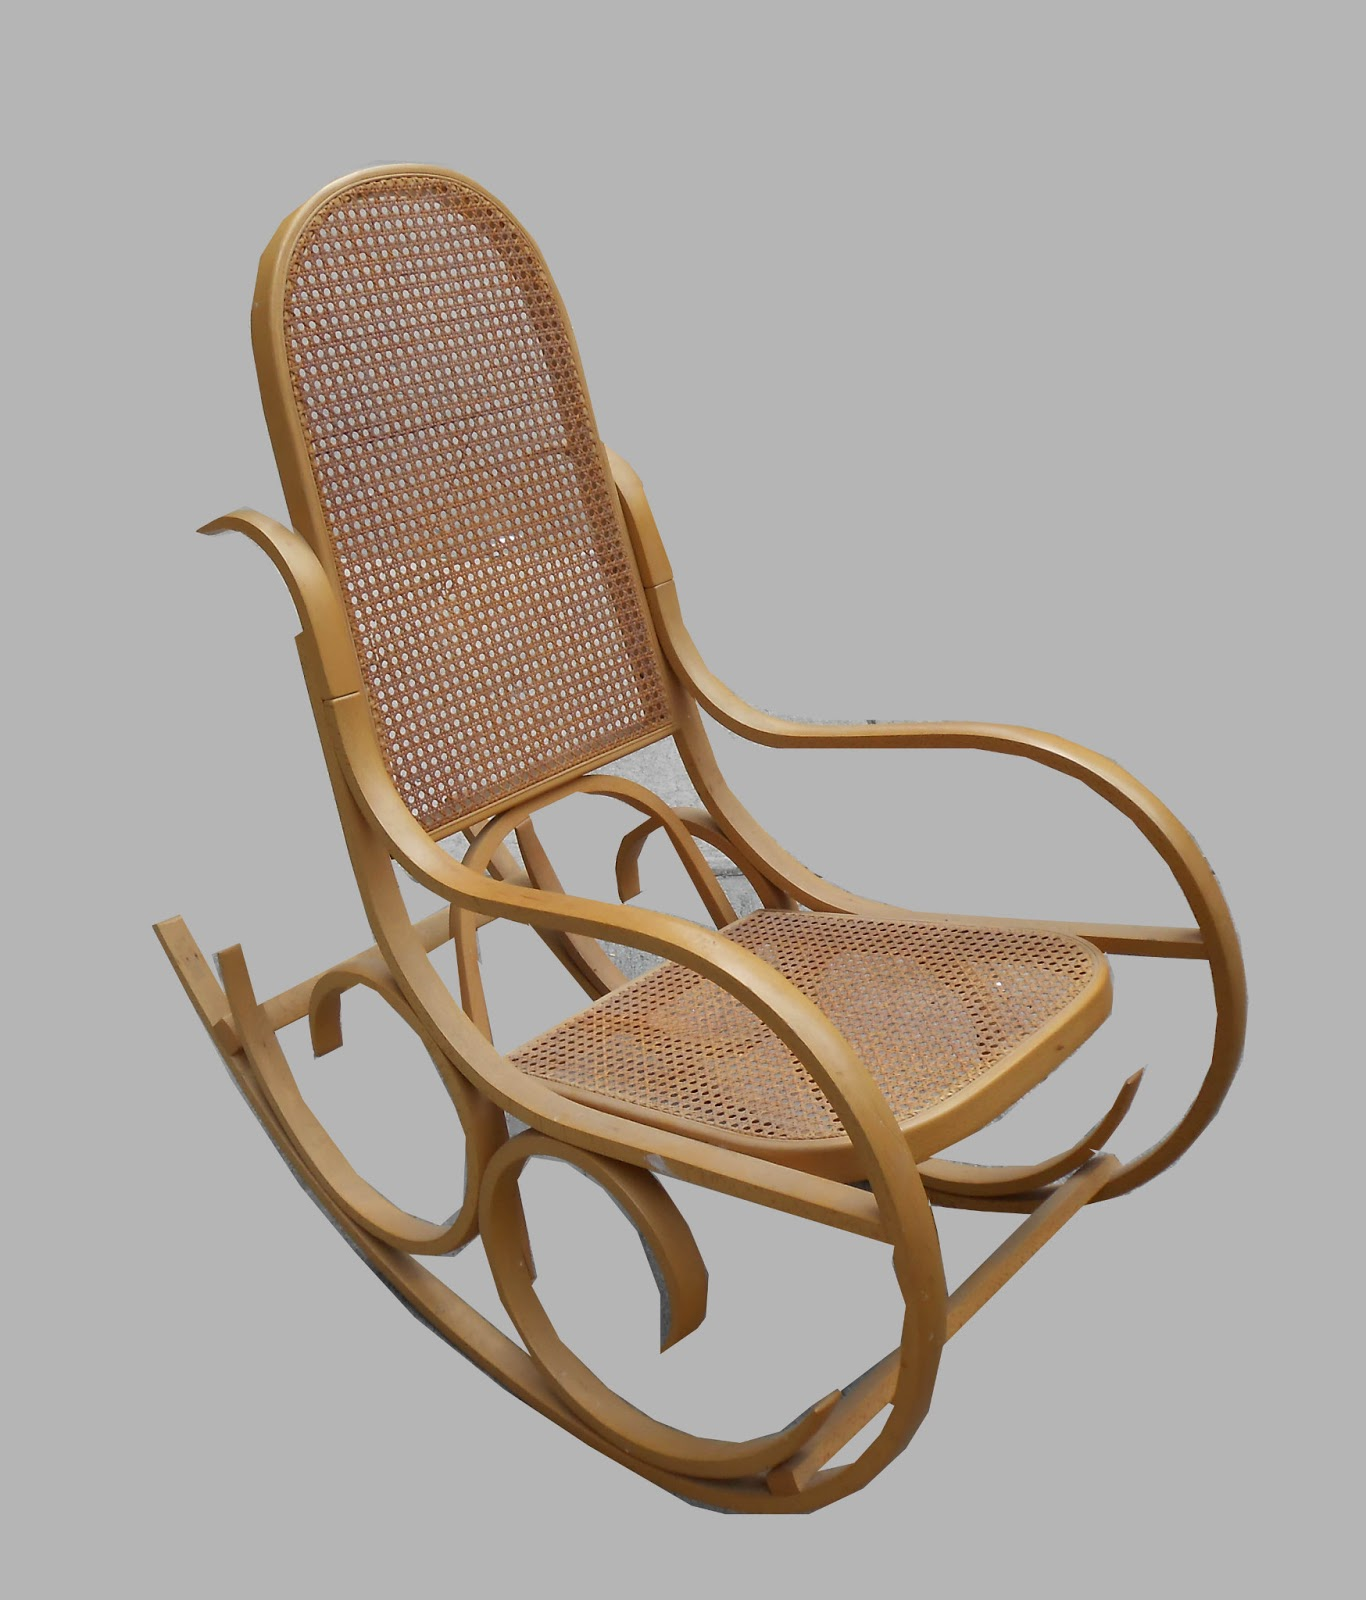 Bent Wood Rocking Chair Hanging Chairs Clear Plastic Uhuru Furniture And Collectibles Thonet Style Bentwood